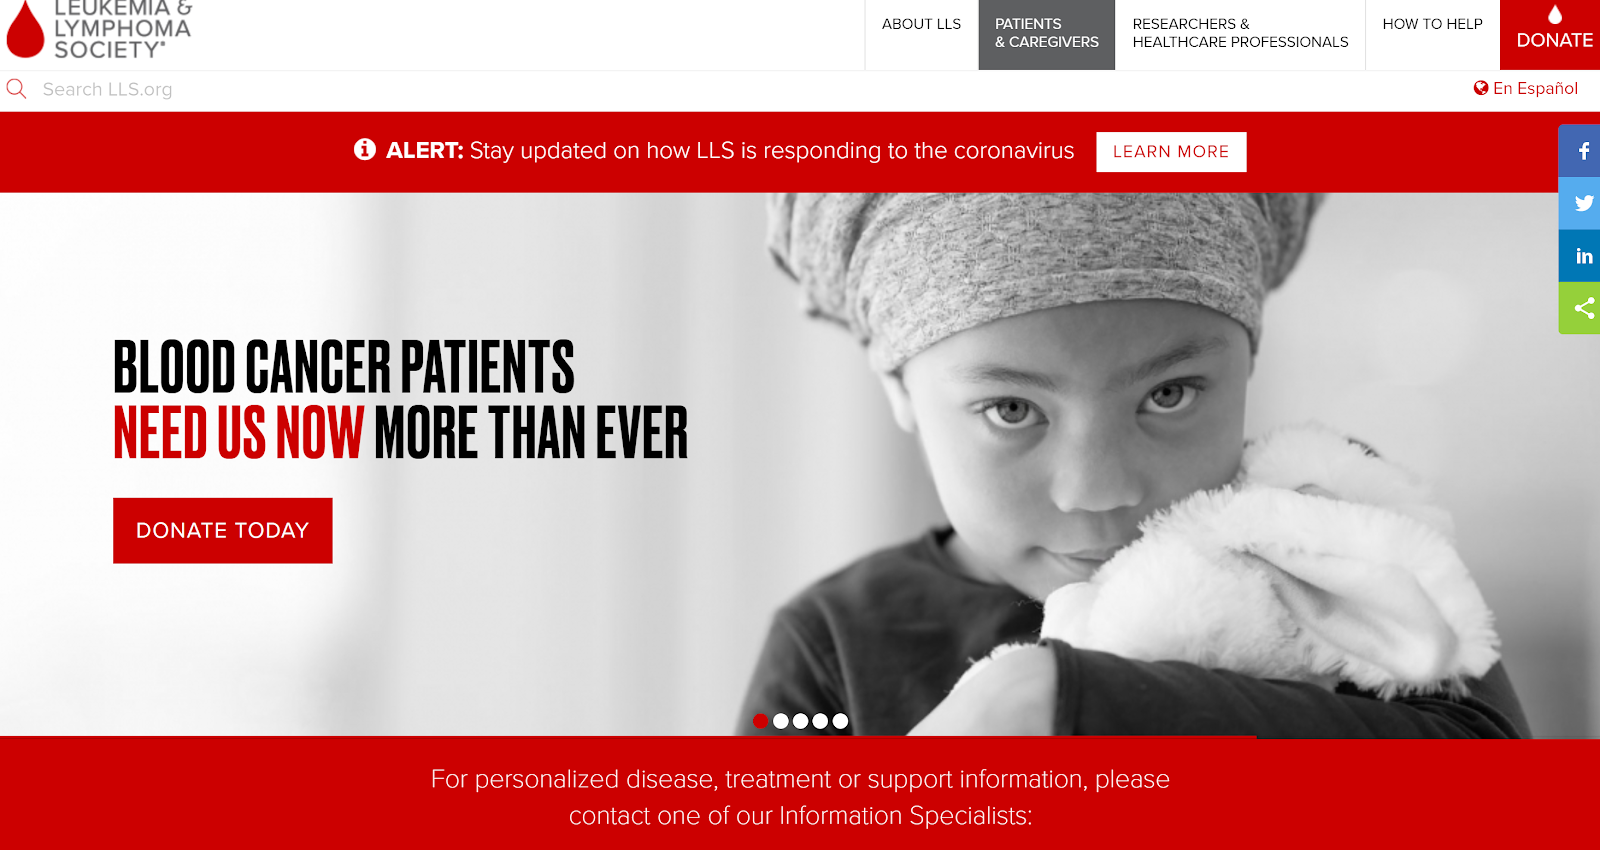 Leukemia and Lymphoma Society page